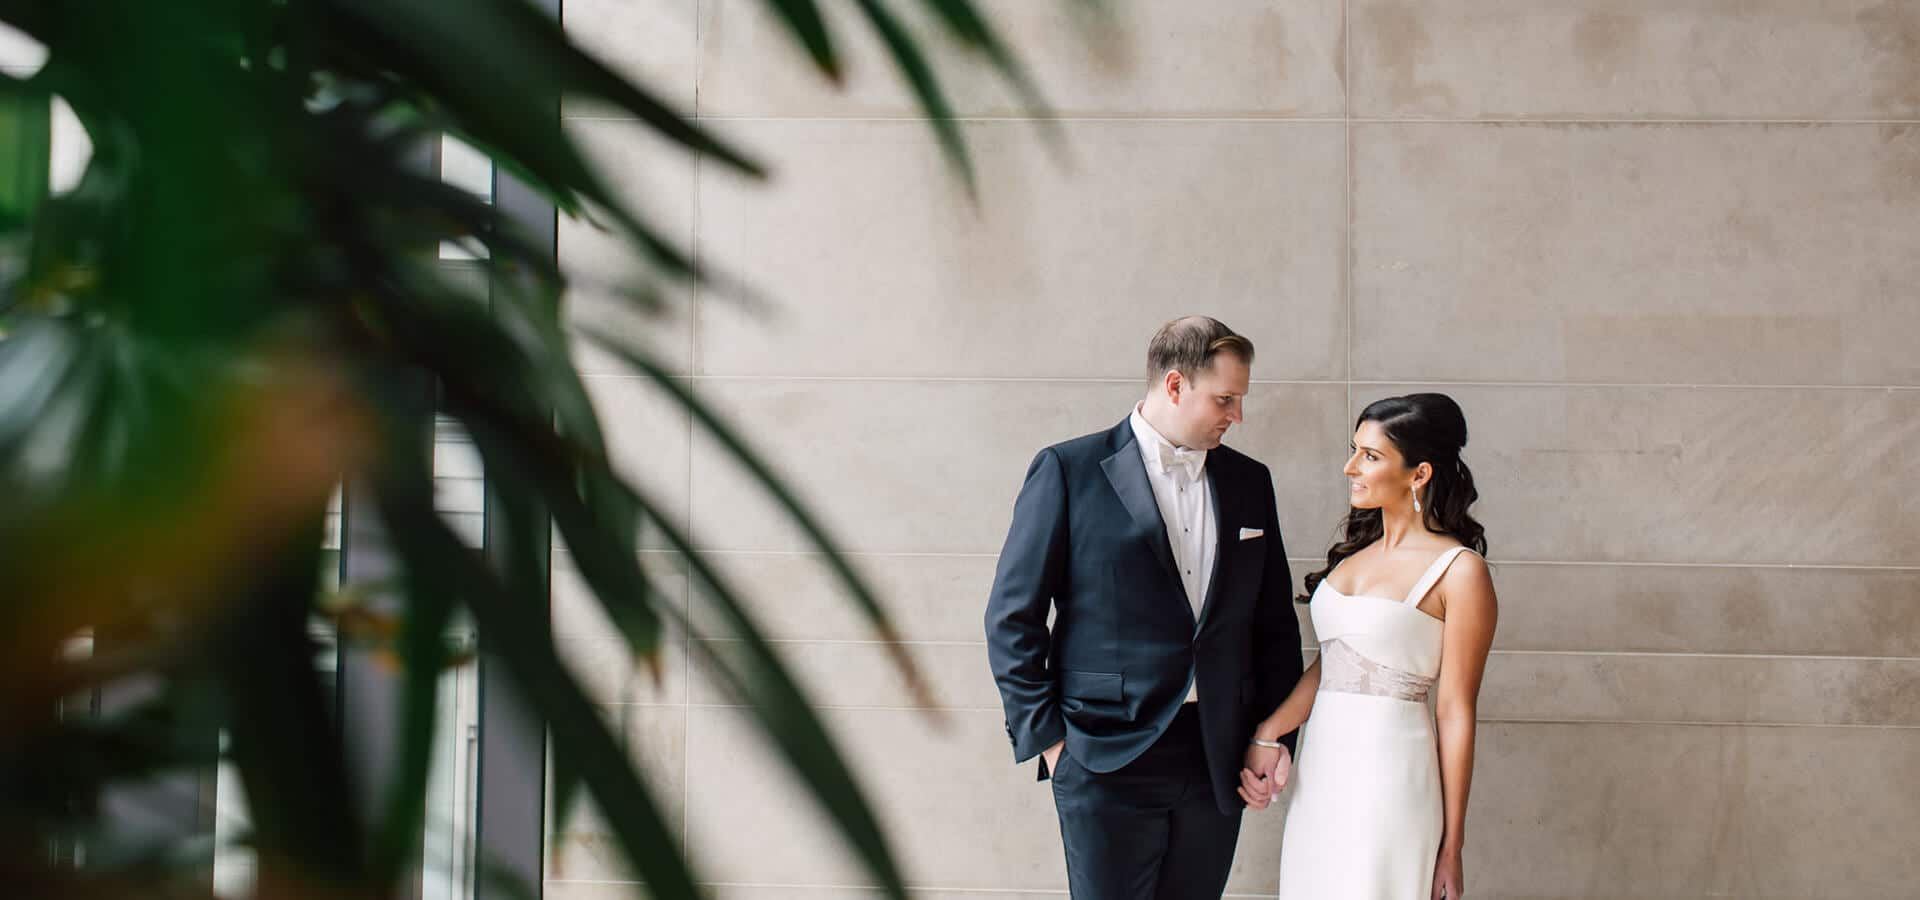 Hero image for 5 Details You Shouldn't Share Before Your Wedding Day